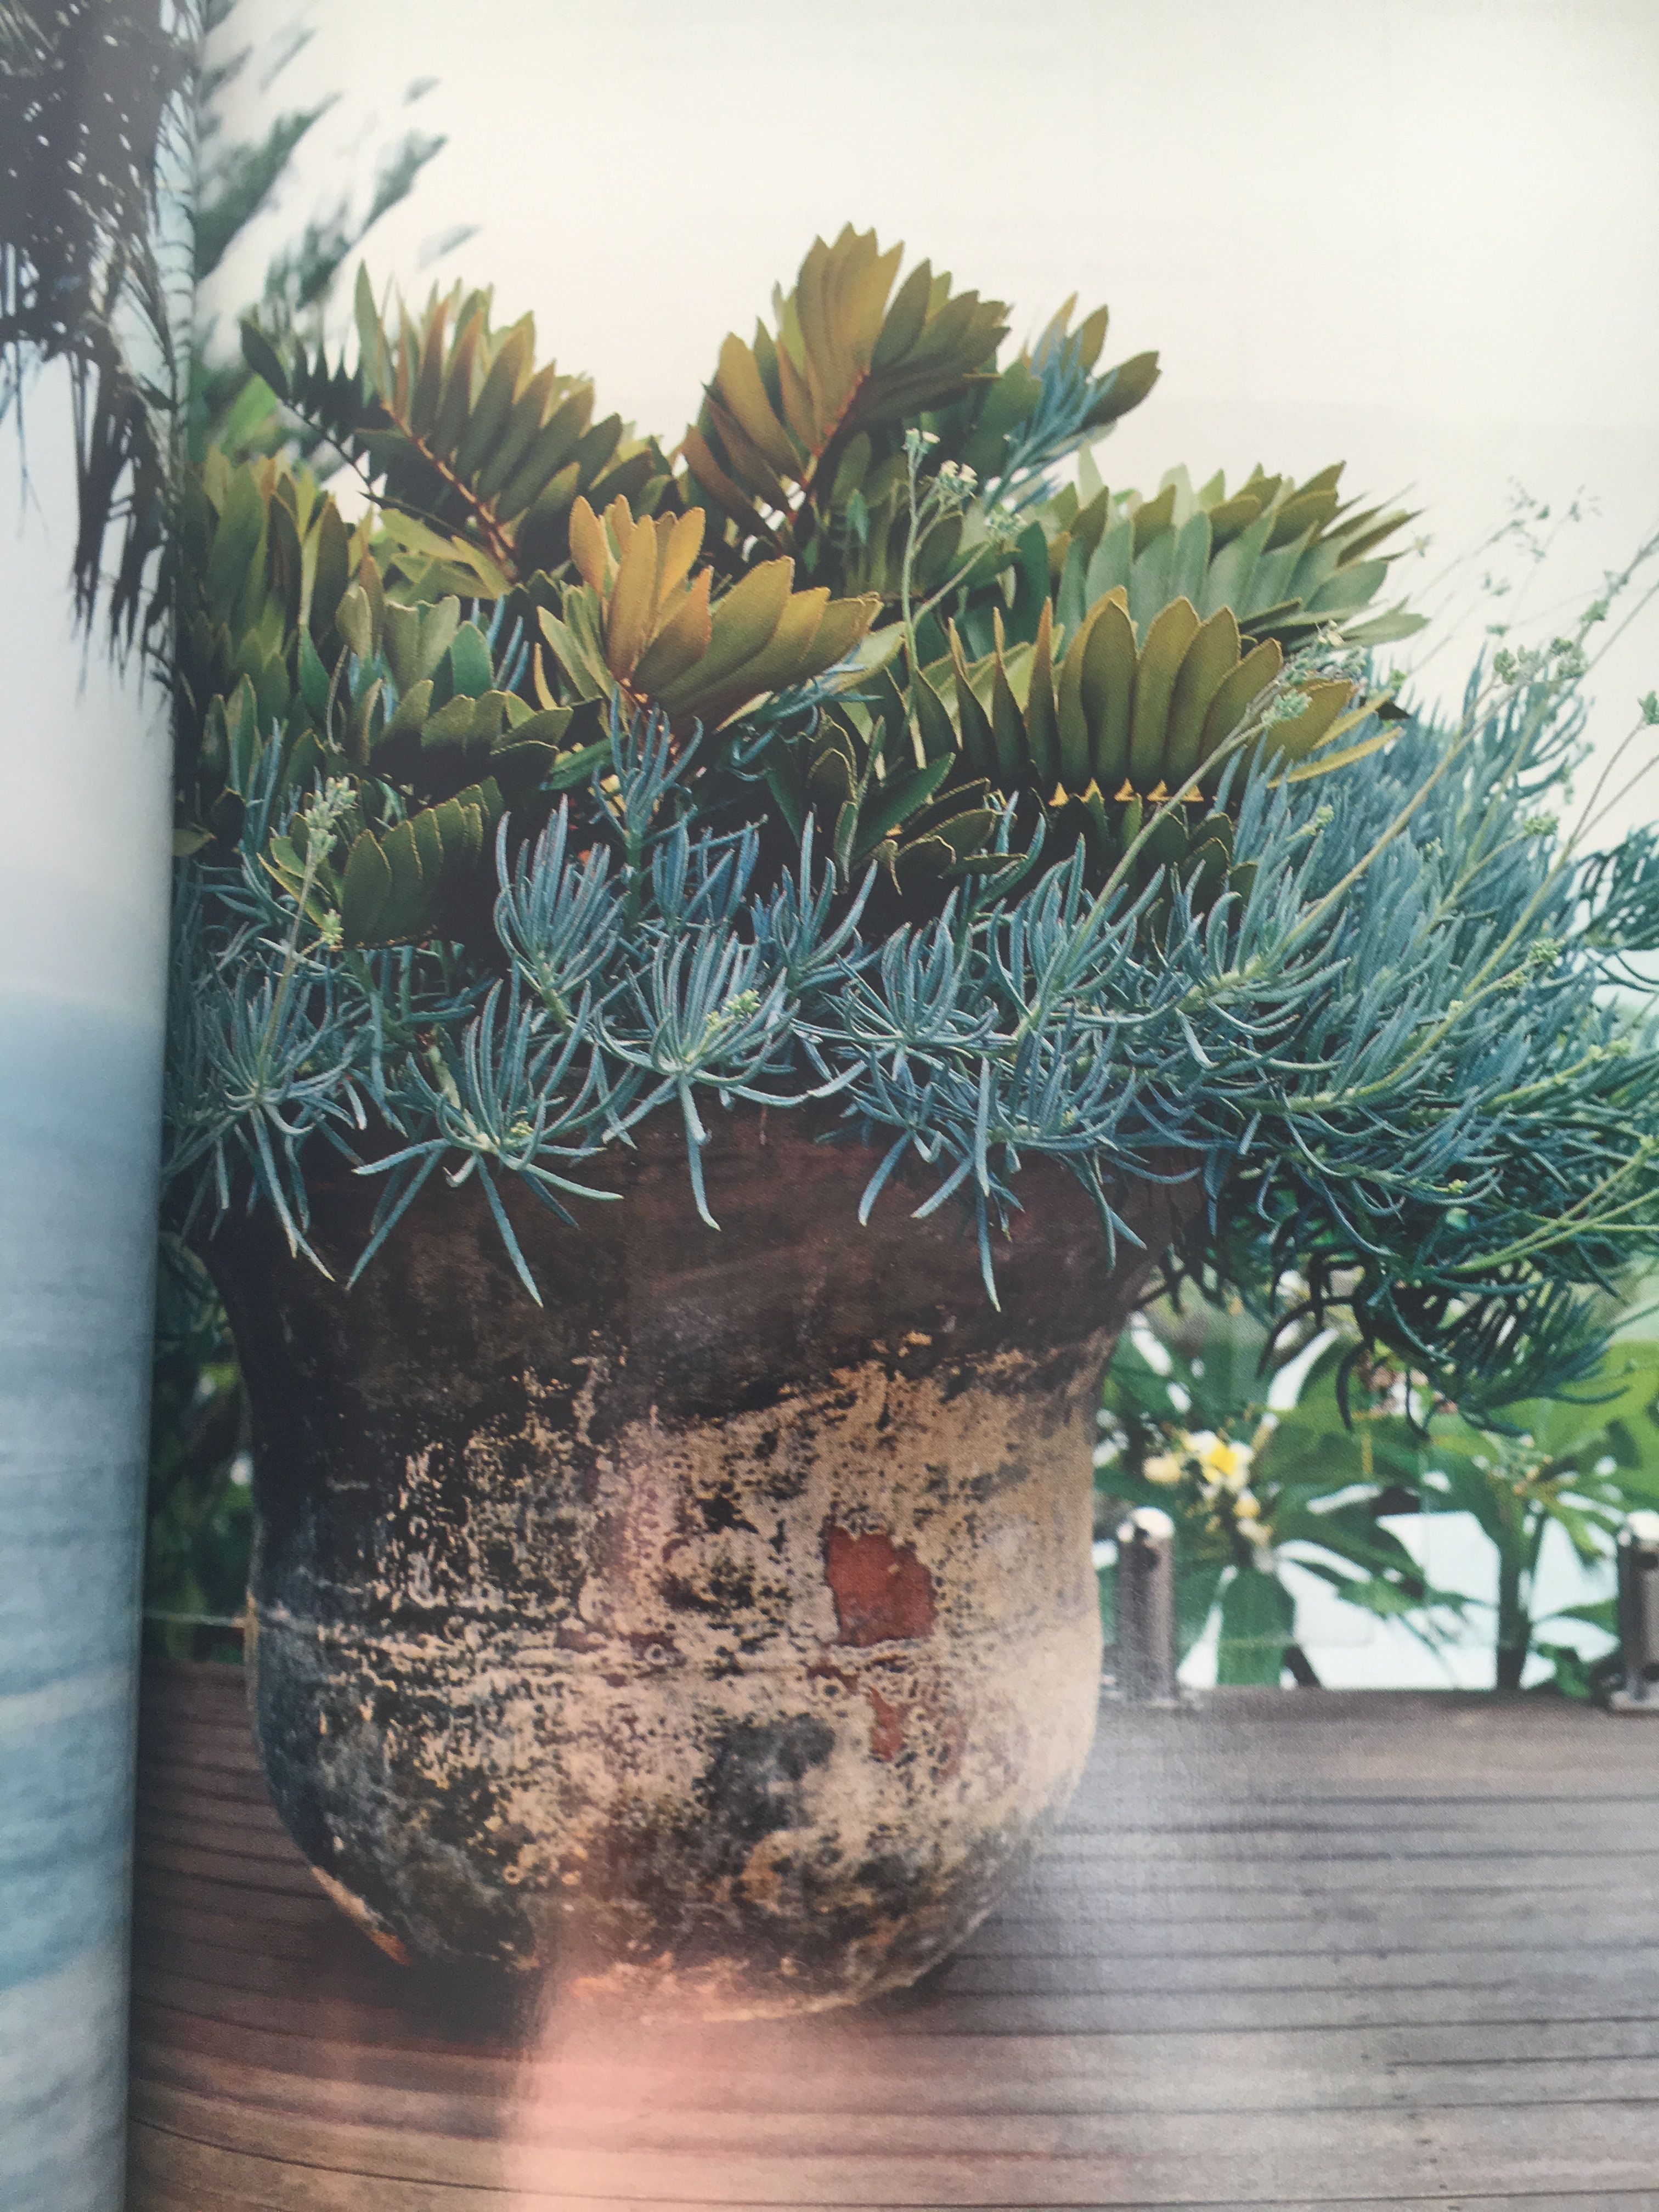 Pin By Jzhonnie Bechet On Pots Plants